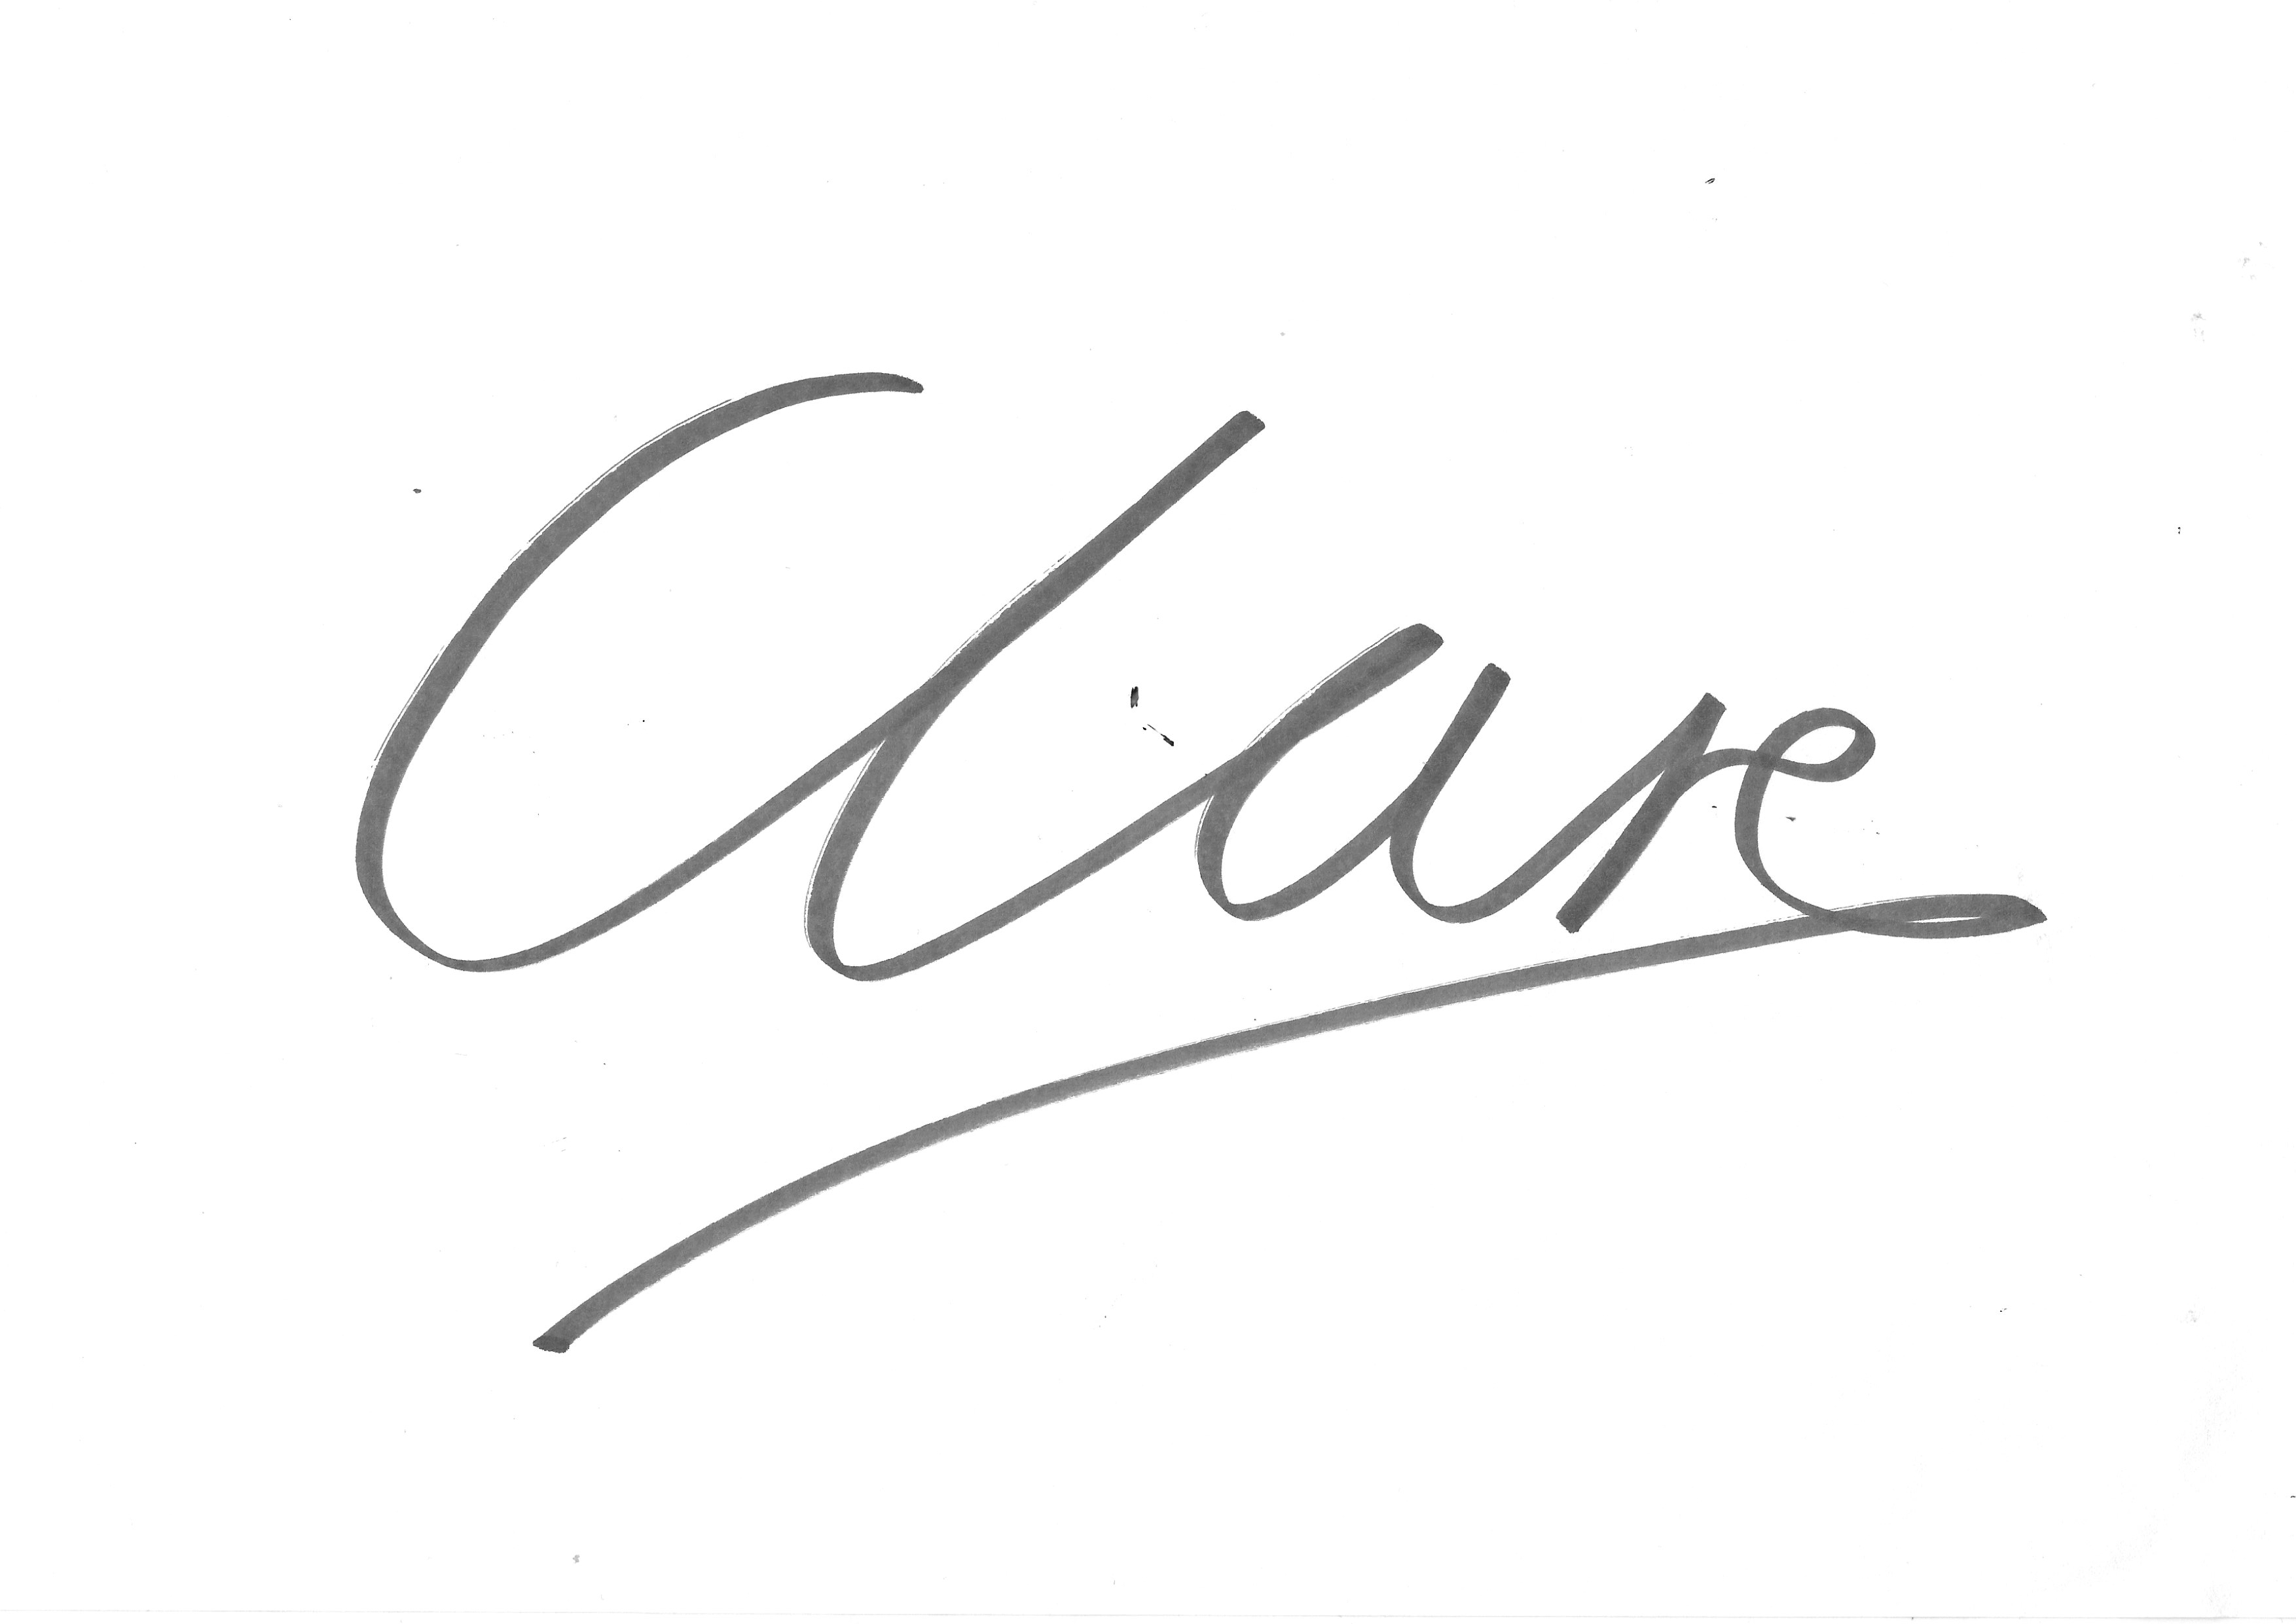 Clare Windass Signature